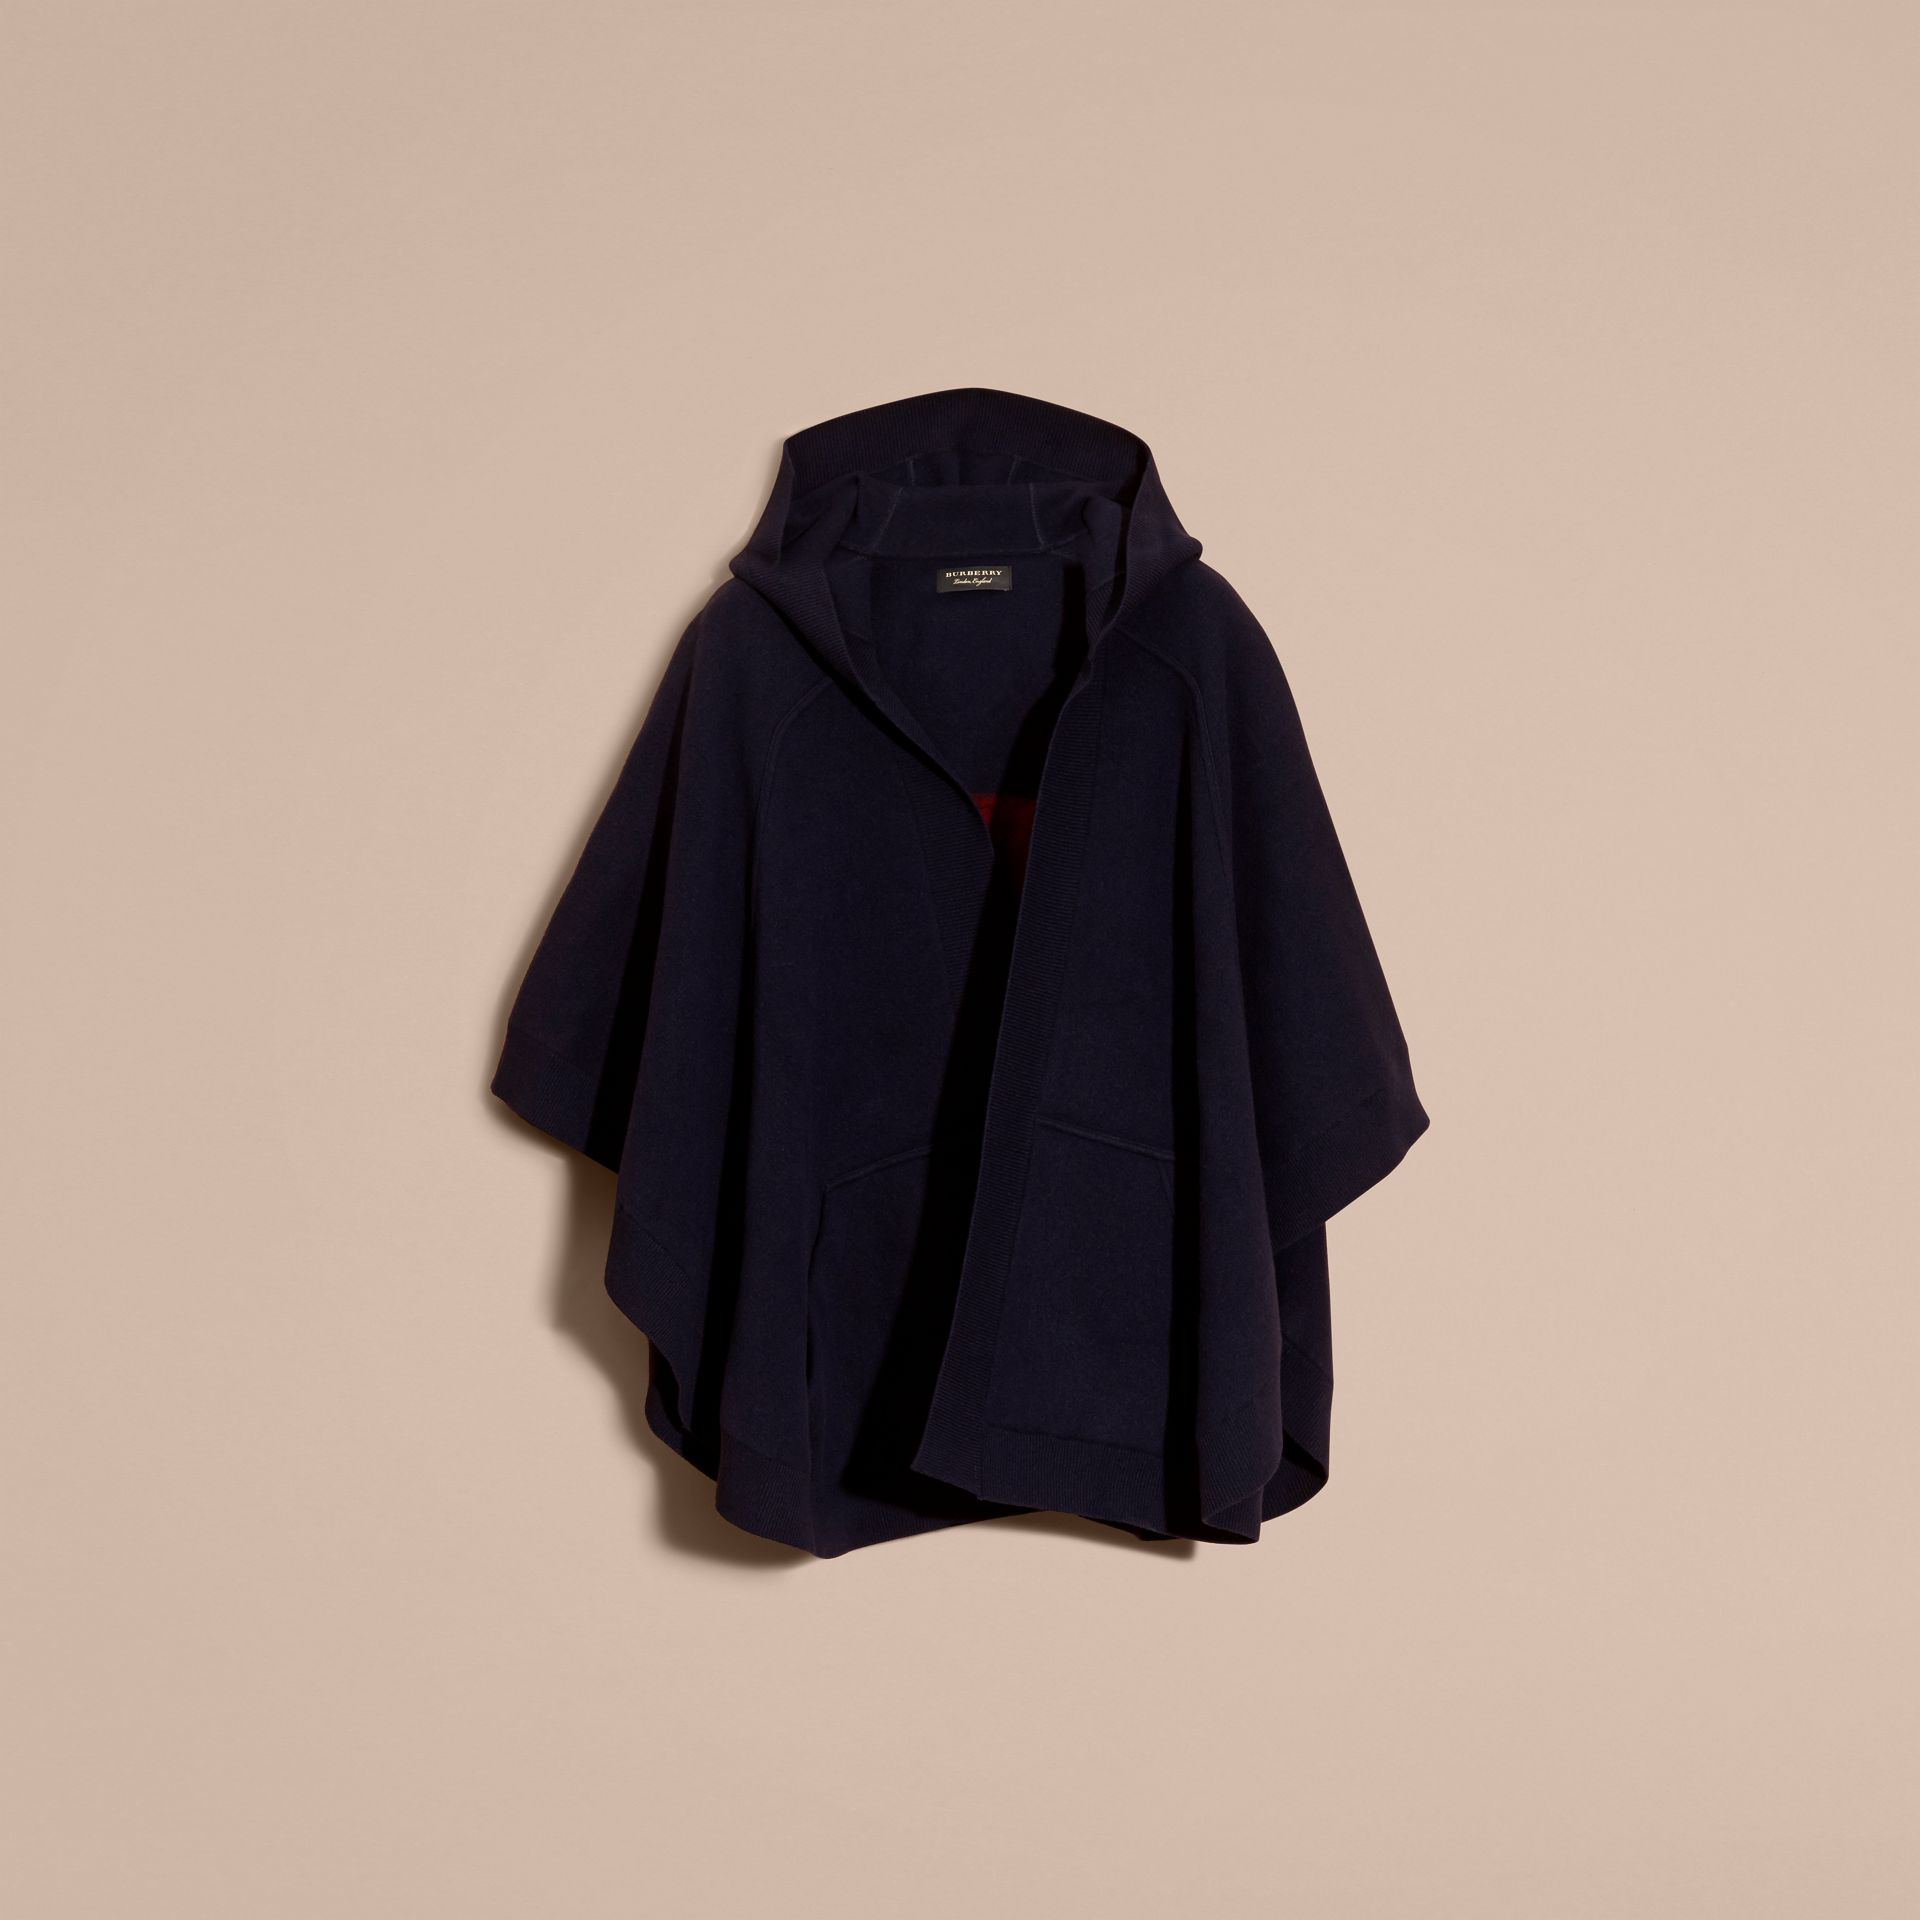 Navy/black Wool Cashmere Blend Hooded Poncho Navy/black - gallery image 4